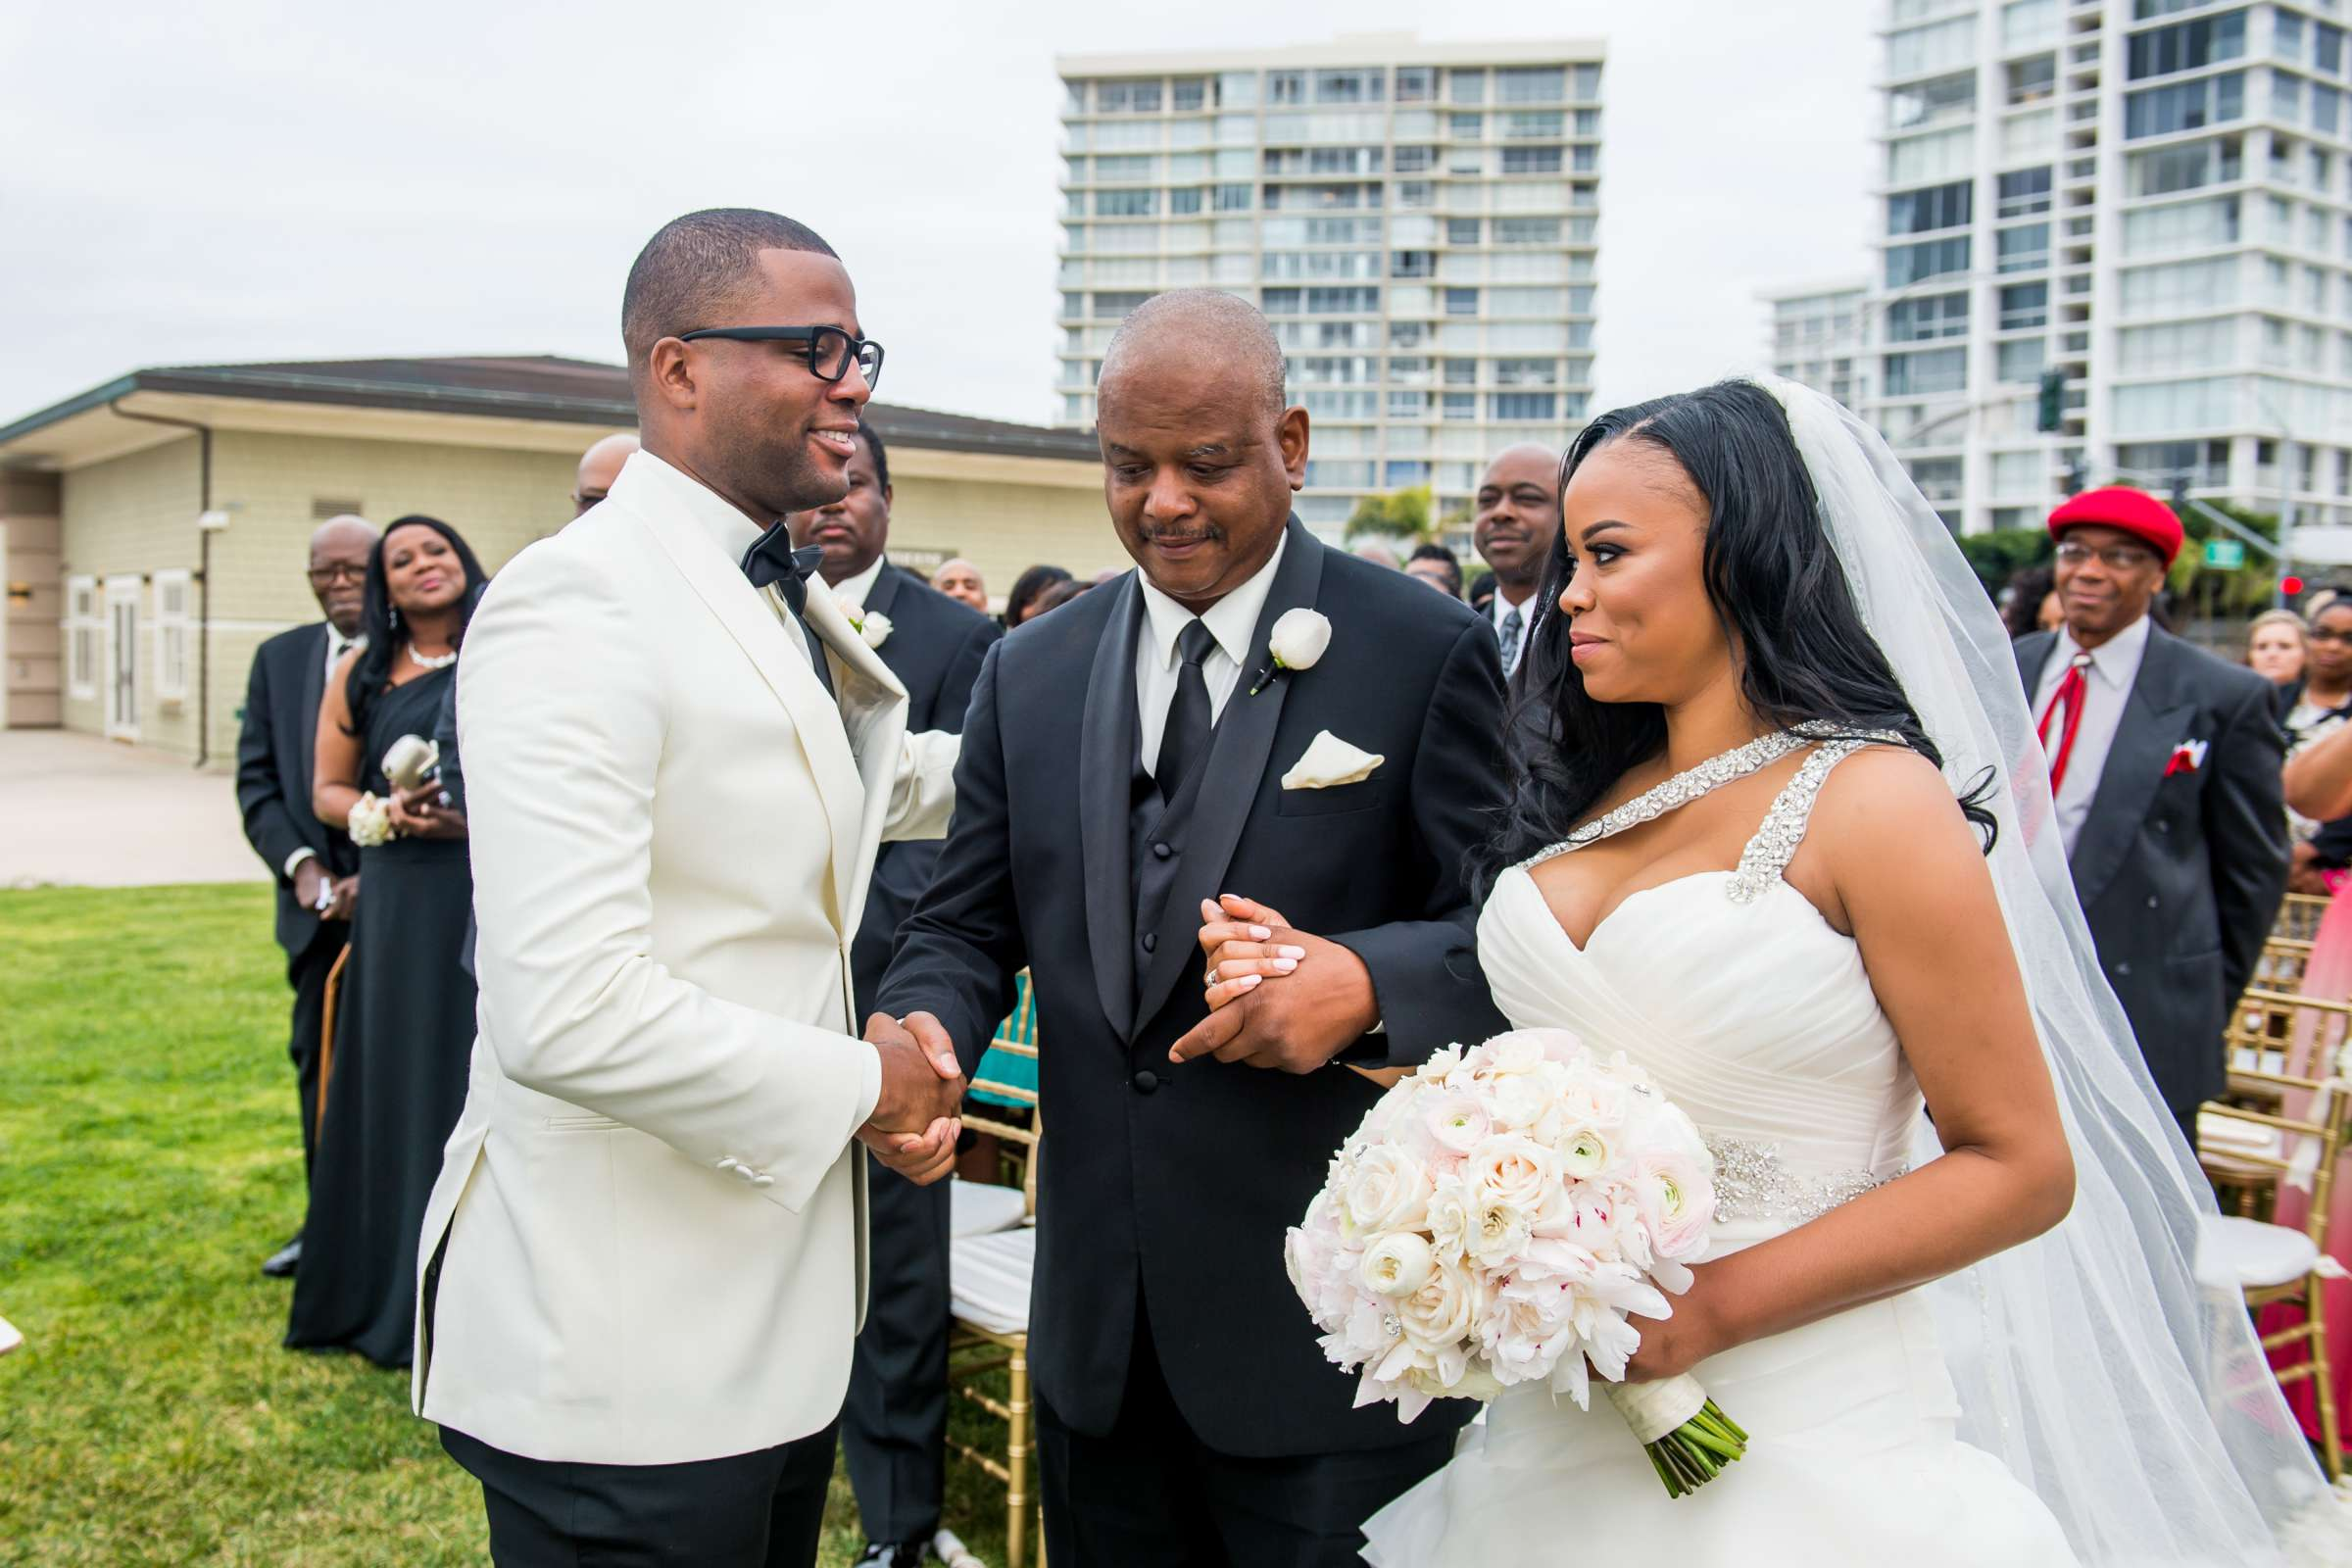 Coronado Community Center Wedding coordinated by First Comes Love Weddings & Events, Nikia and Charles Wedding Photo #49 by True Photography